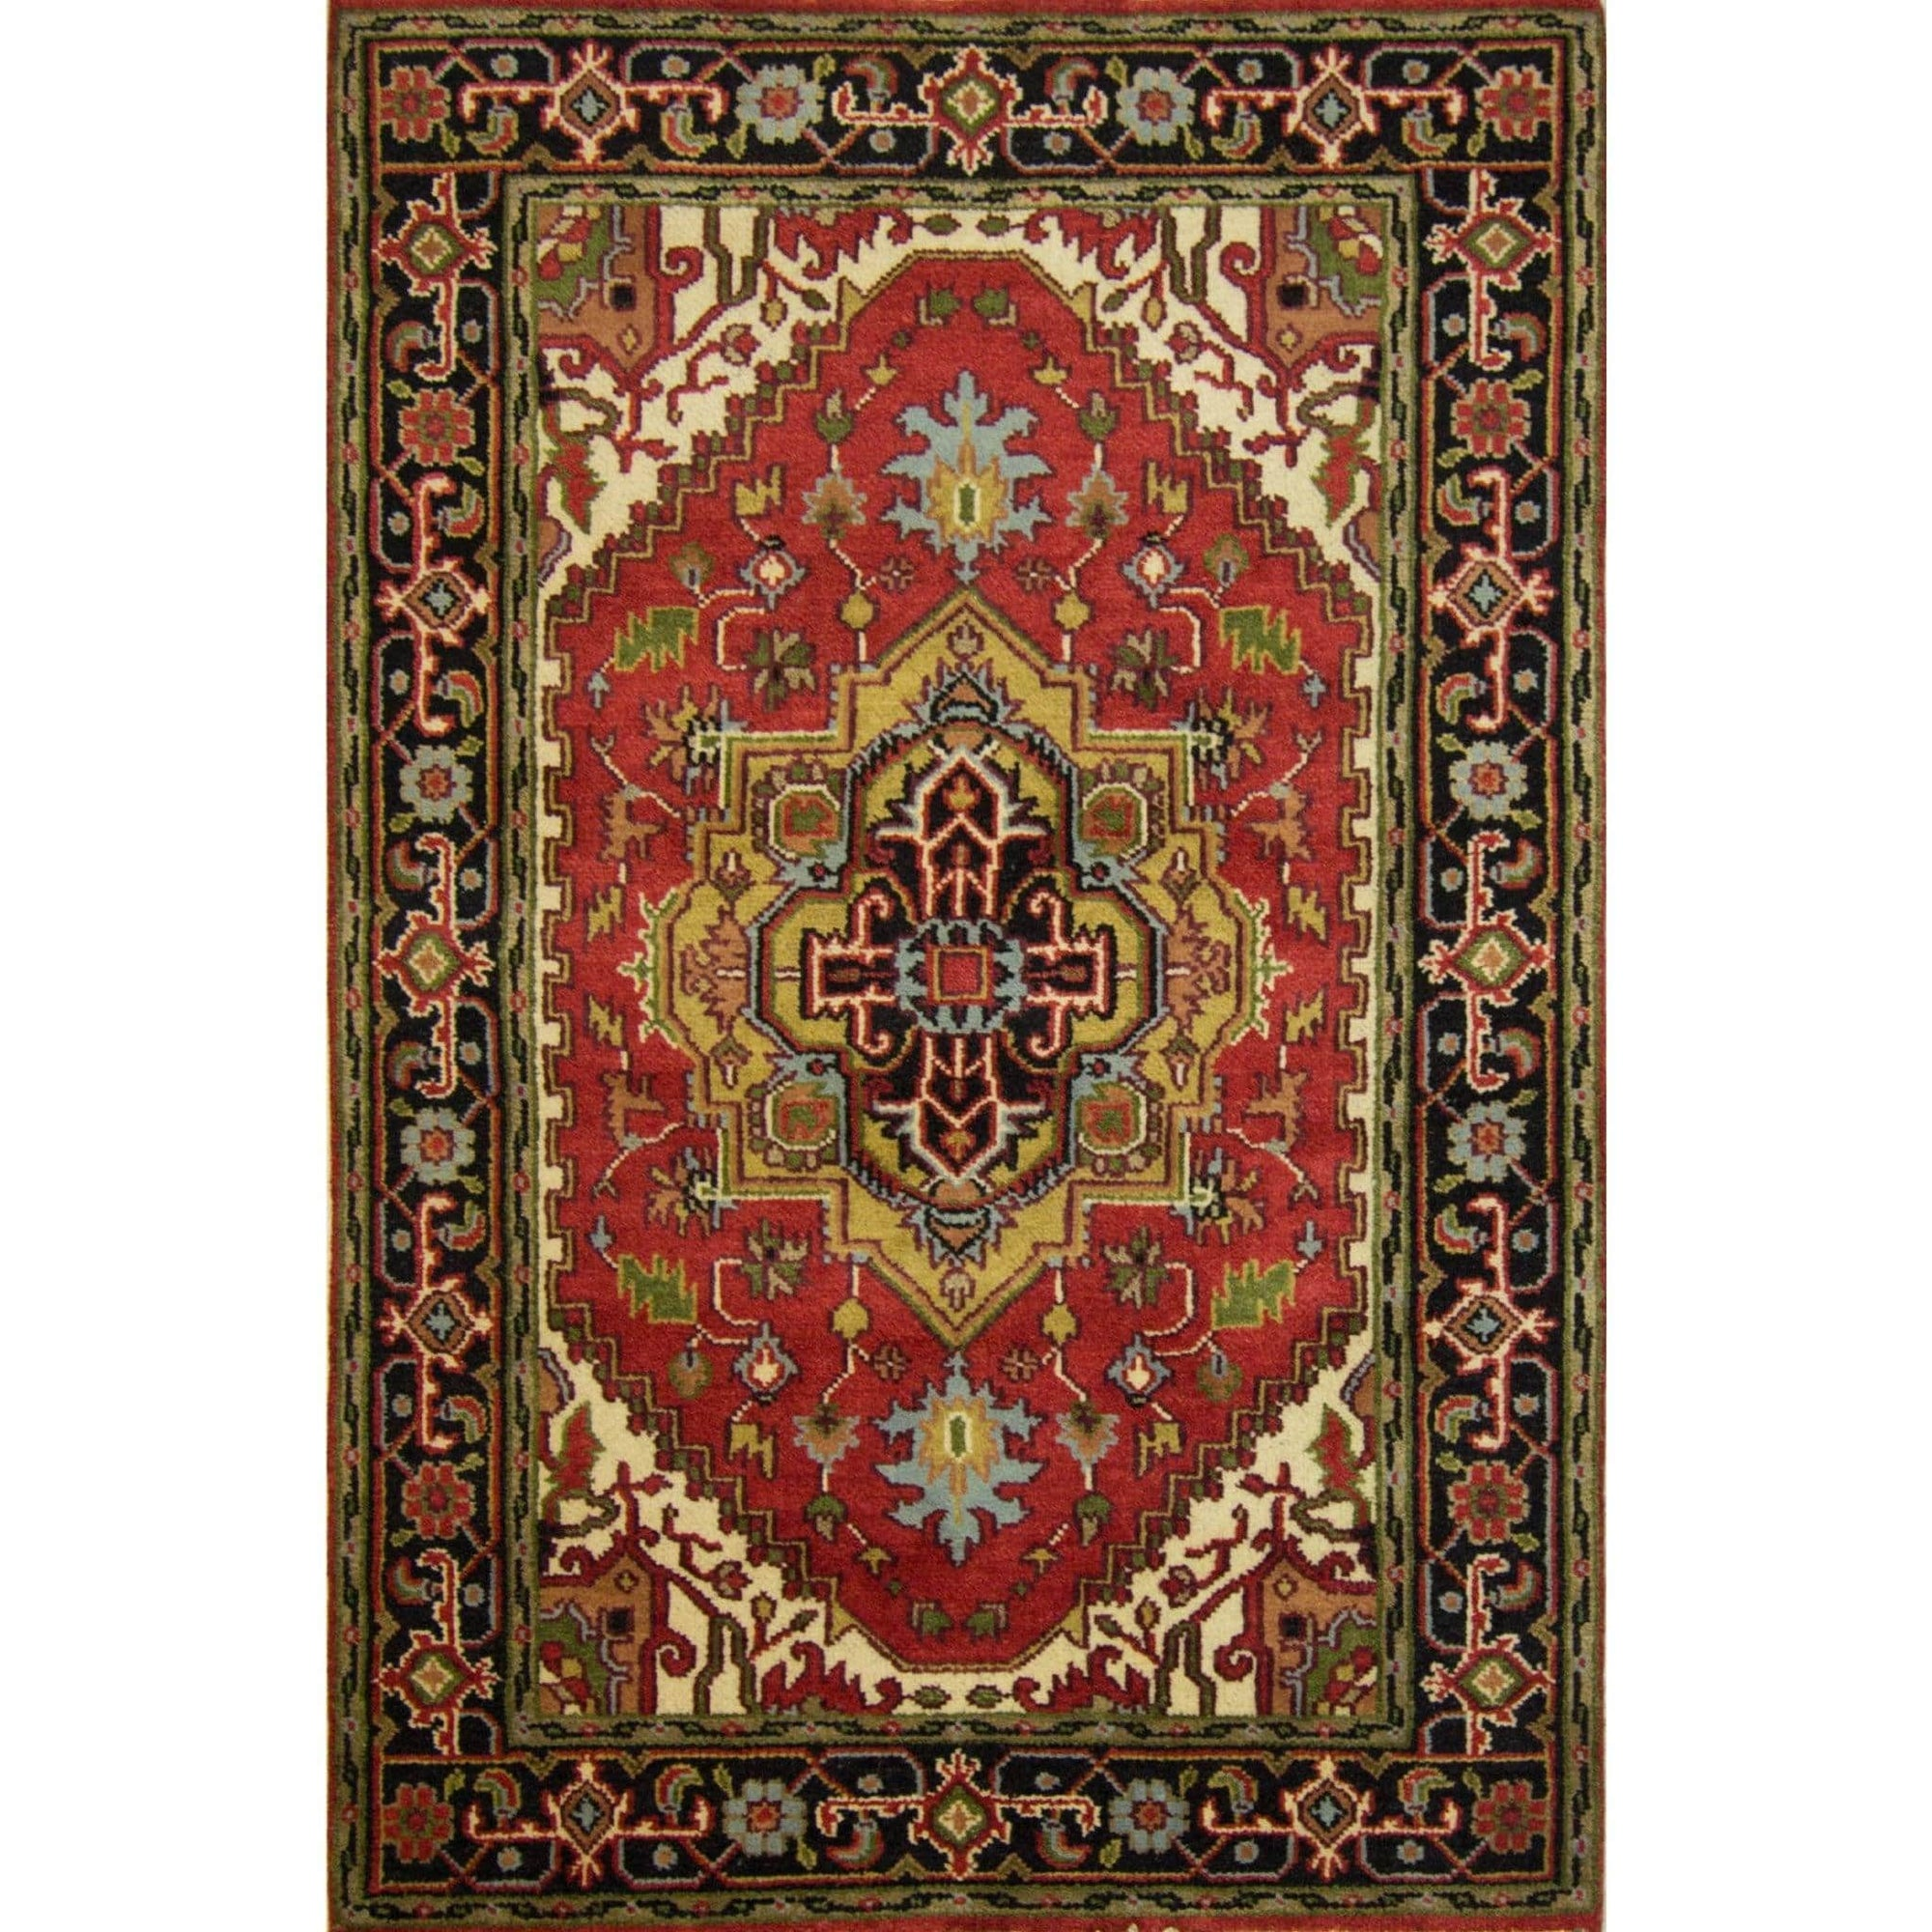 Hand-knotted Wool Heriz Rug 120cm x 181cm Persian-Rug | House-of-Haghi | NewMarket | Auckland | NZ | Handmade Persian Rugs | Hand Knotted Persian Rugs